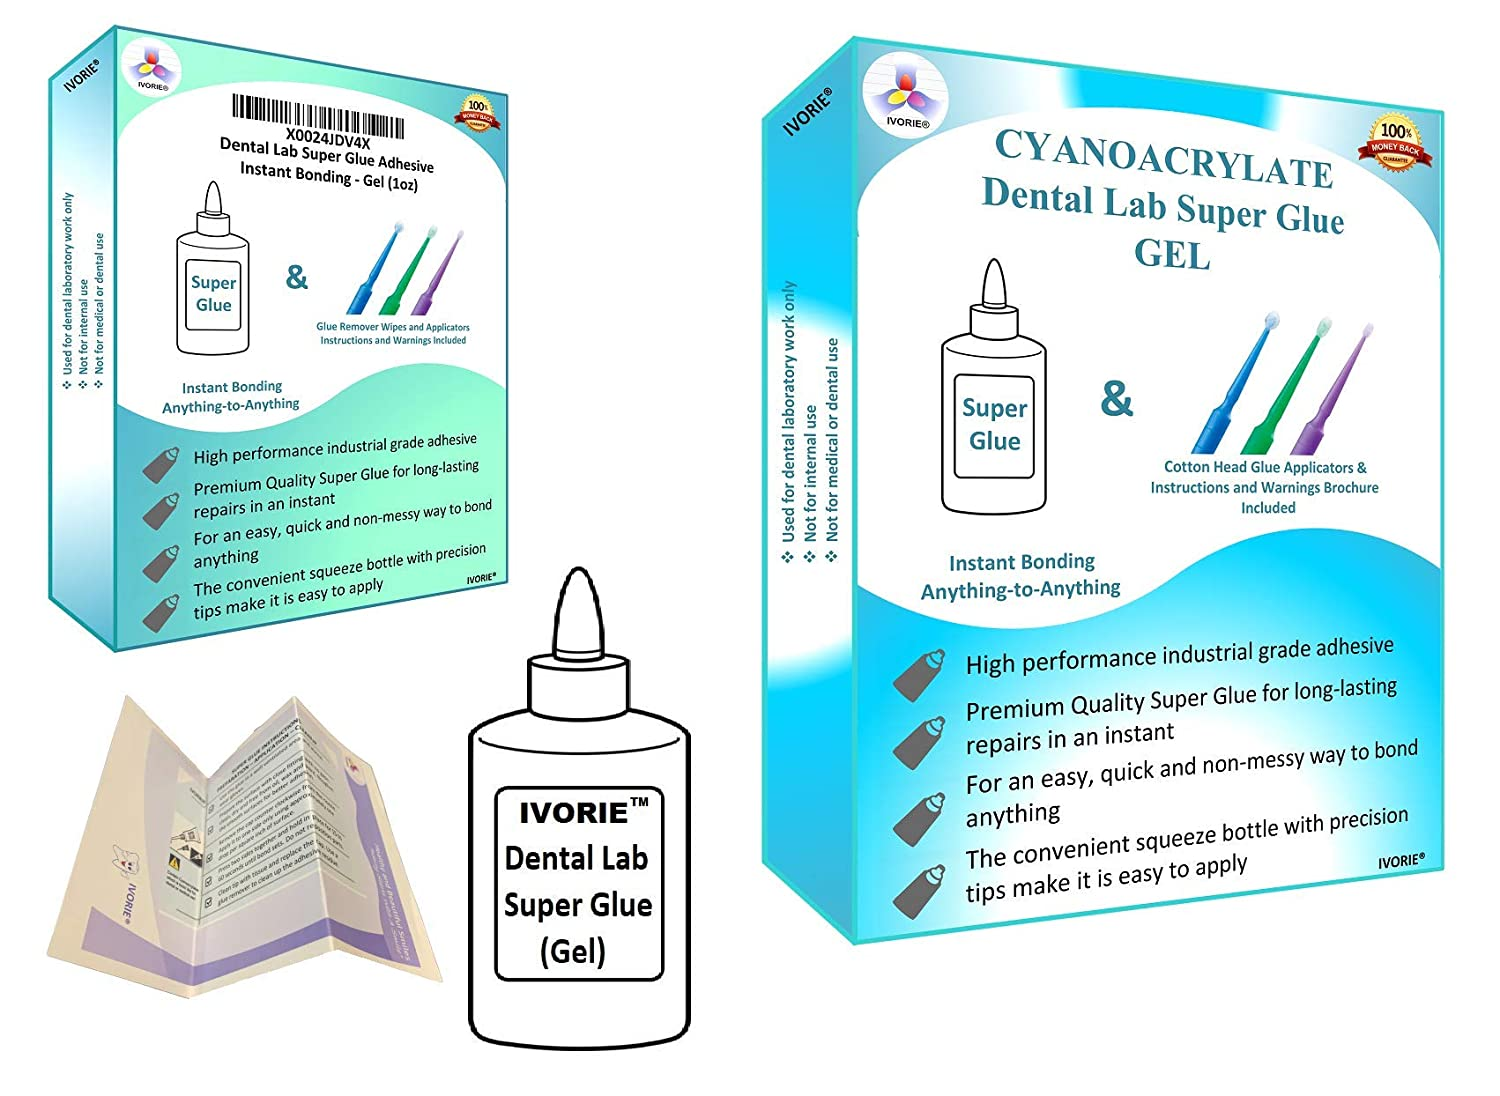 Dental Lab Super Glue Adhesive Instant Bonding - Gel (1oz)